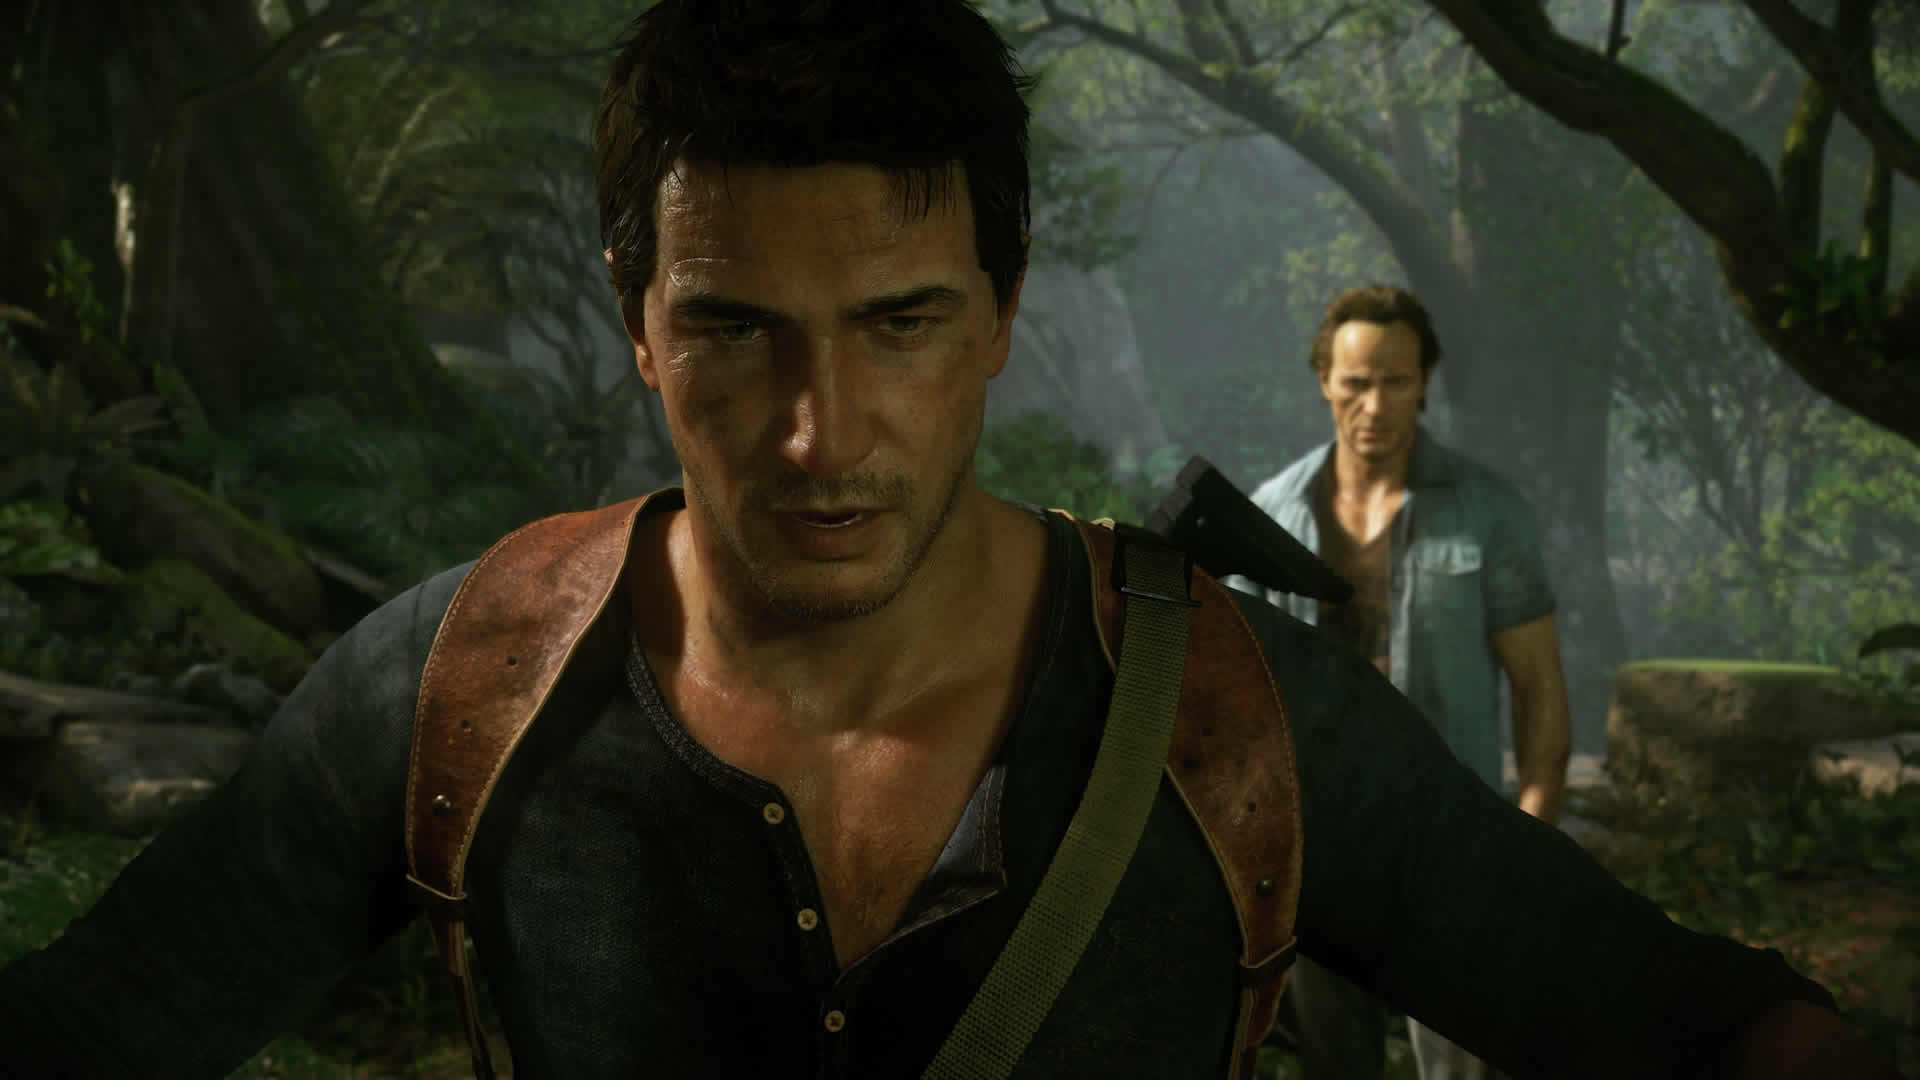 E3 2015: Uncharted 4 Gameplay Revealed at E3